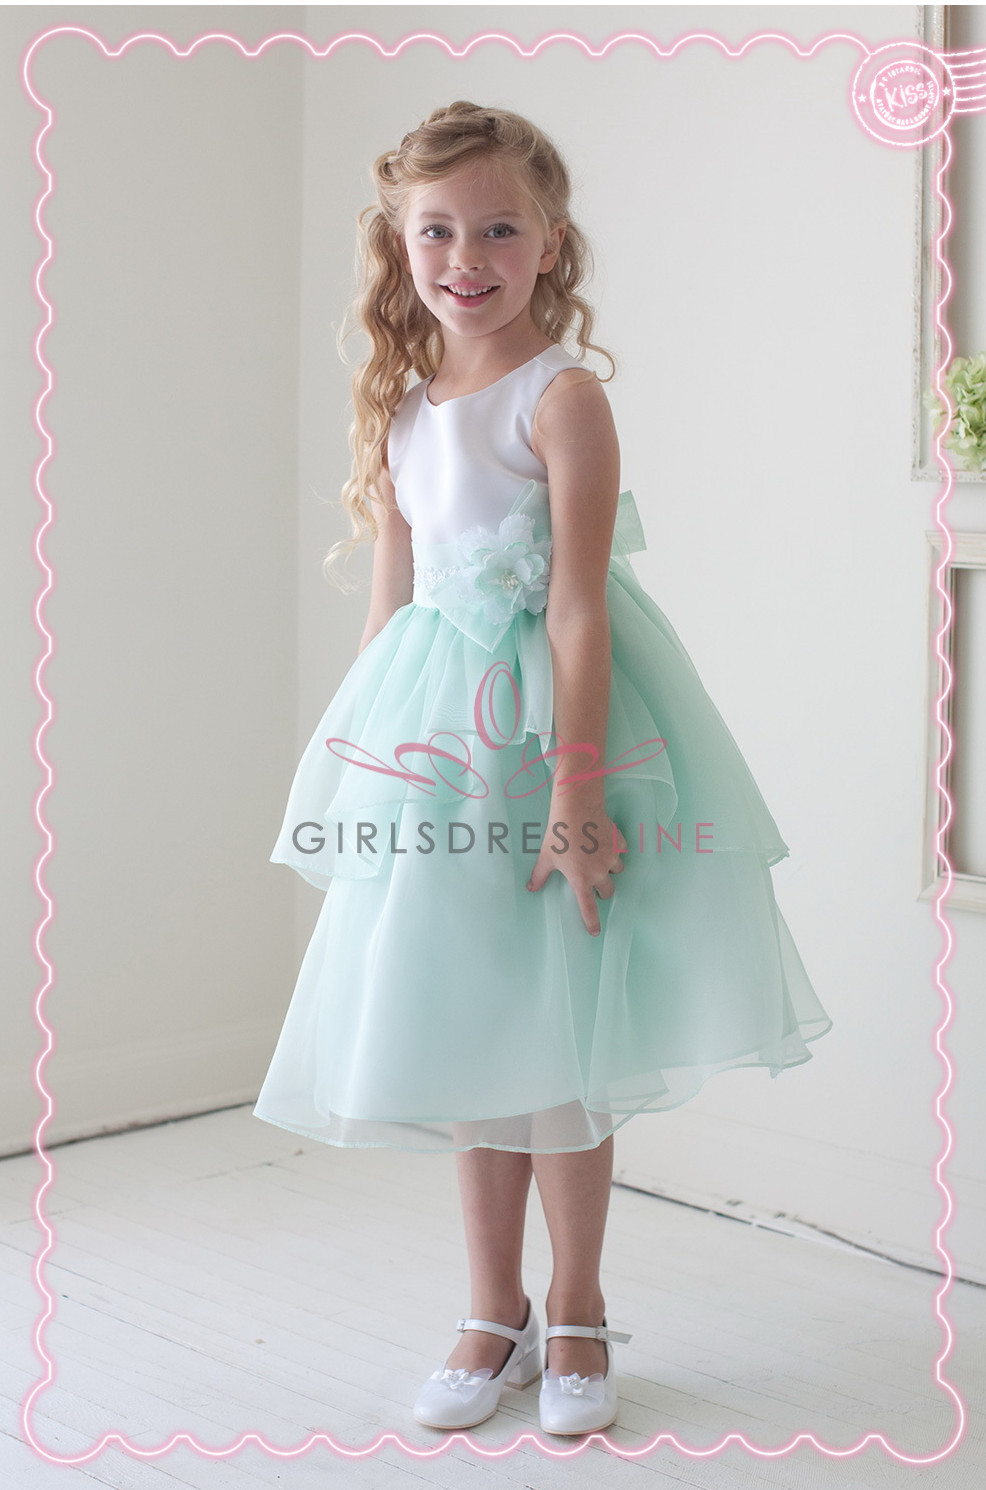 Perfect Dress For Bday Party Image Collection - All Wedding Dresses ...